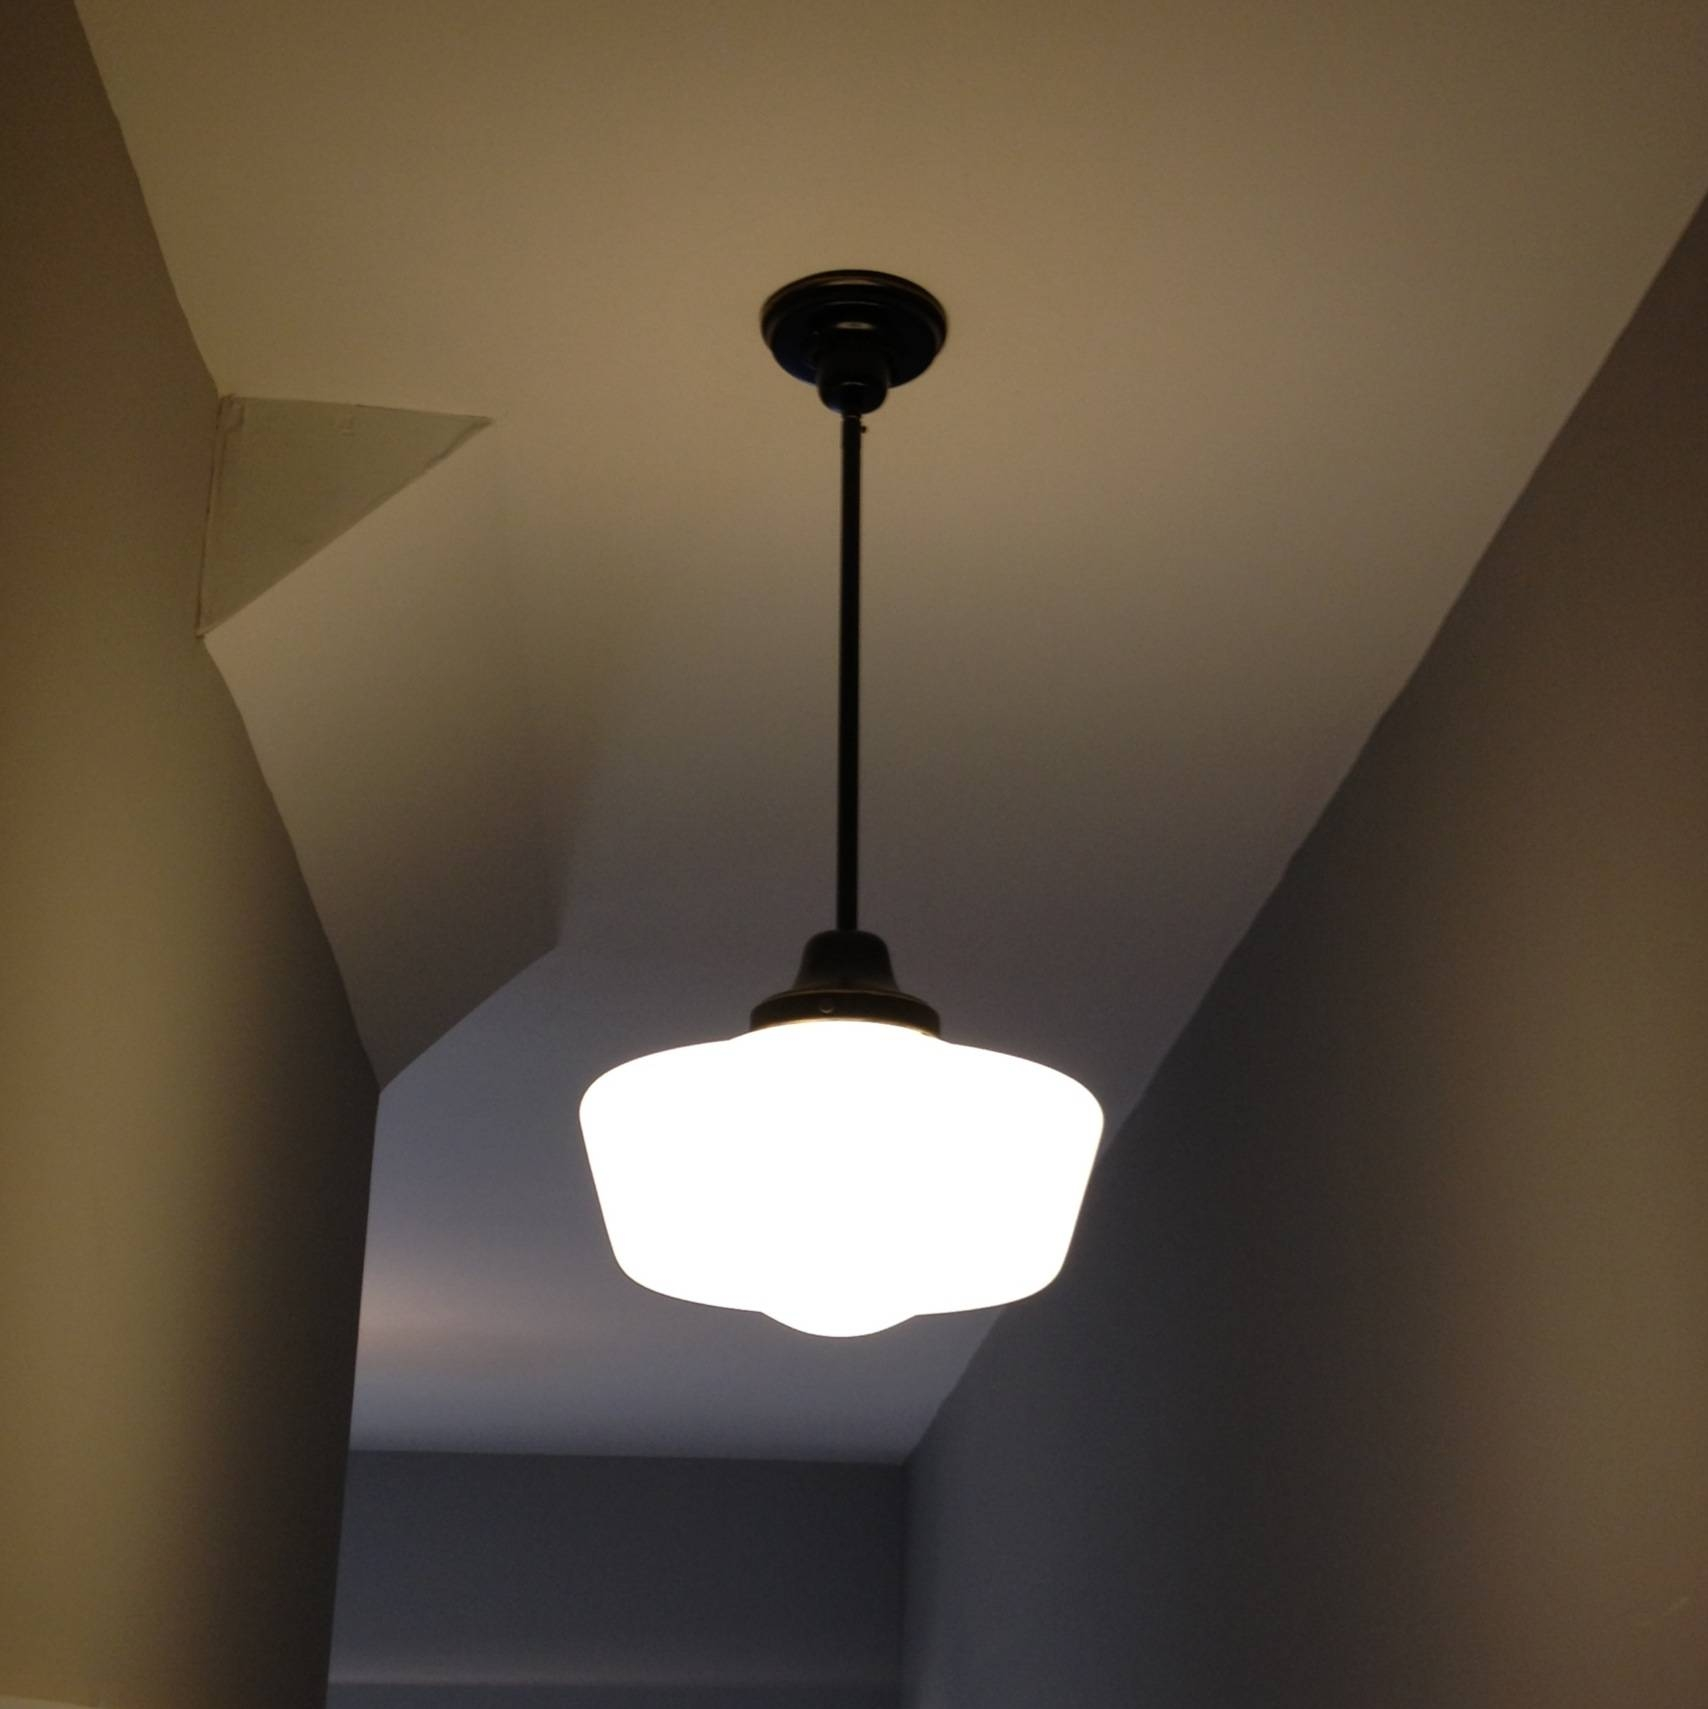 Schoolhouse Pendant Light Fixture — All About Home Design : How To intended for Schoolhouse Pendant Lights (Image 13 of 15)